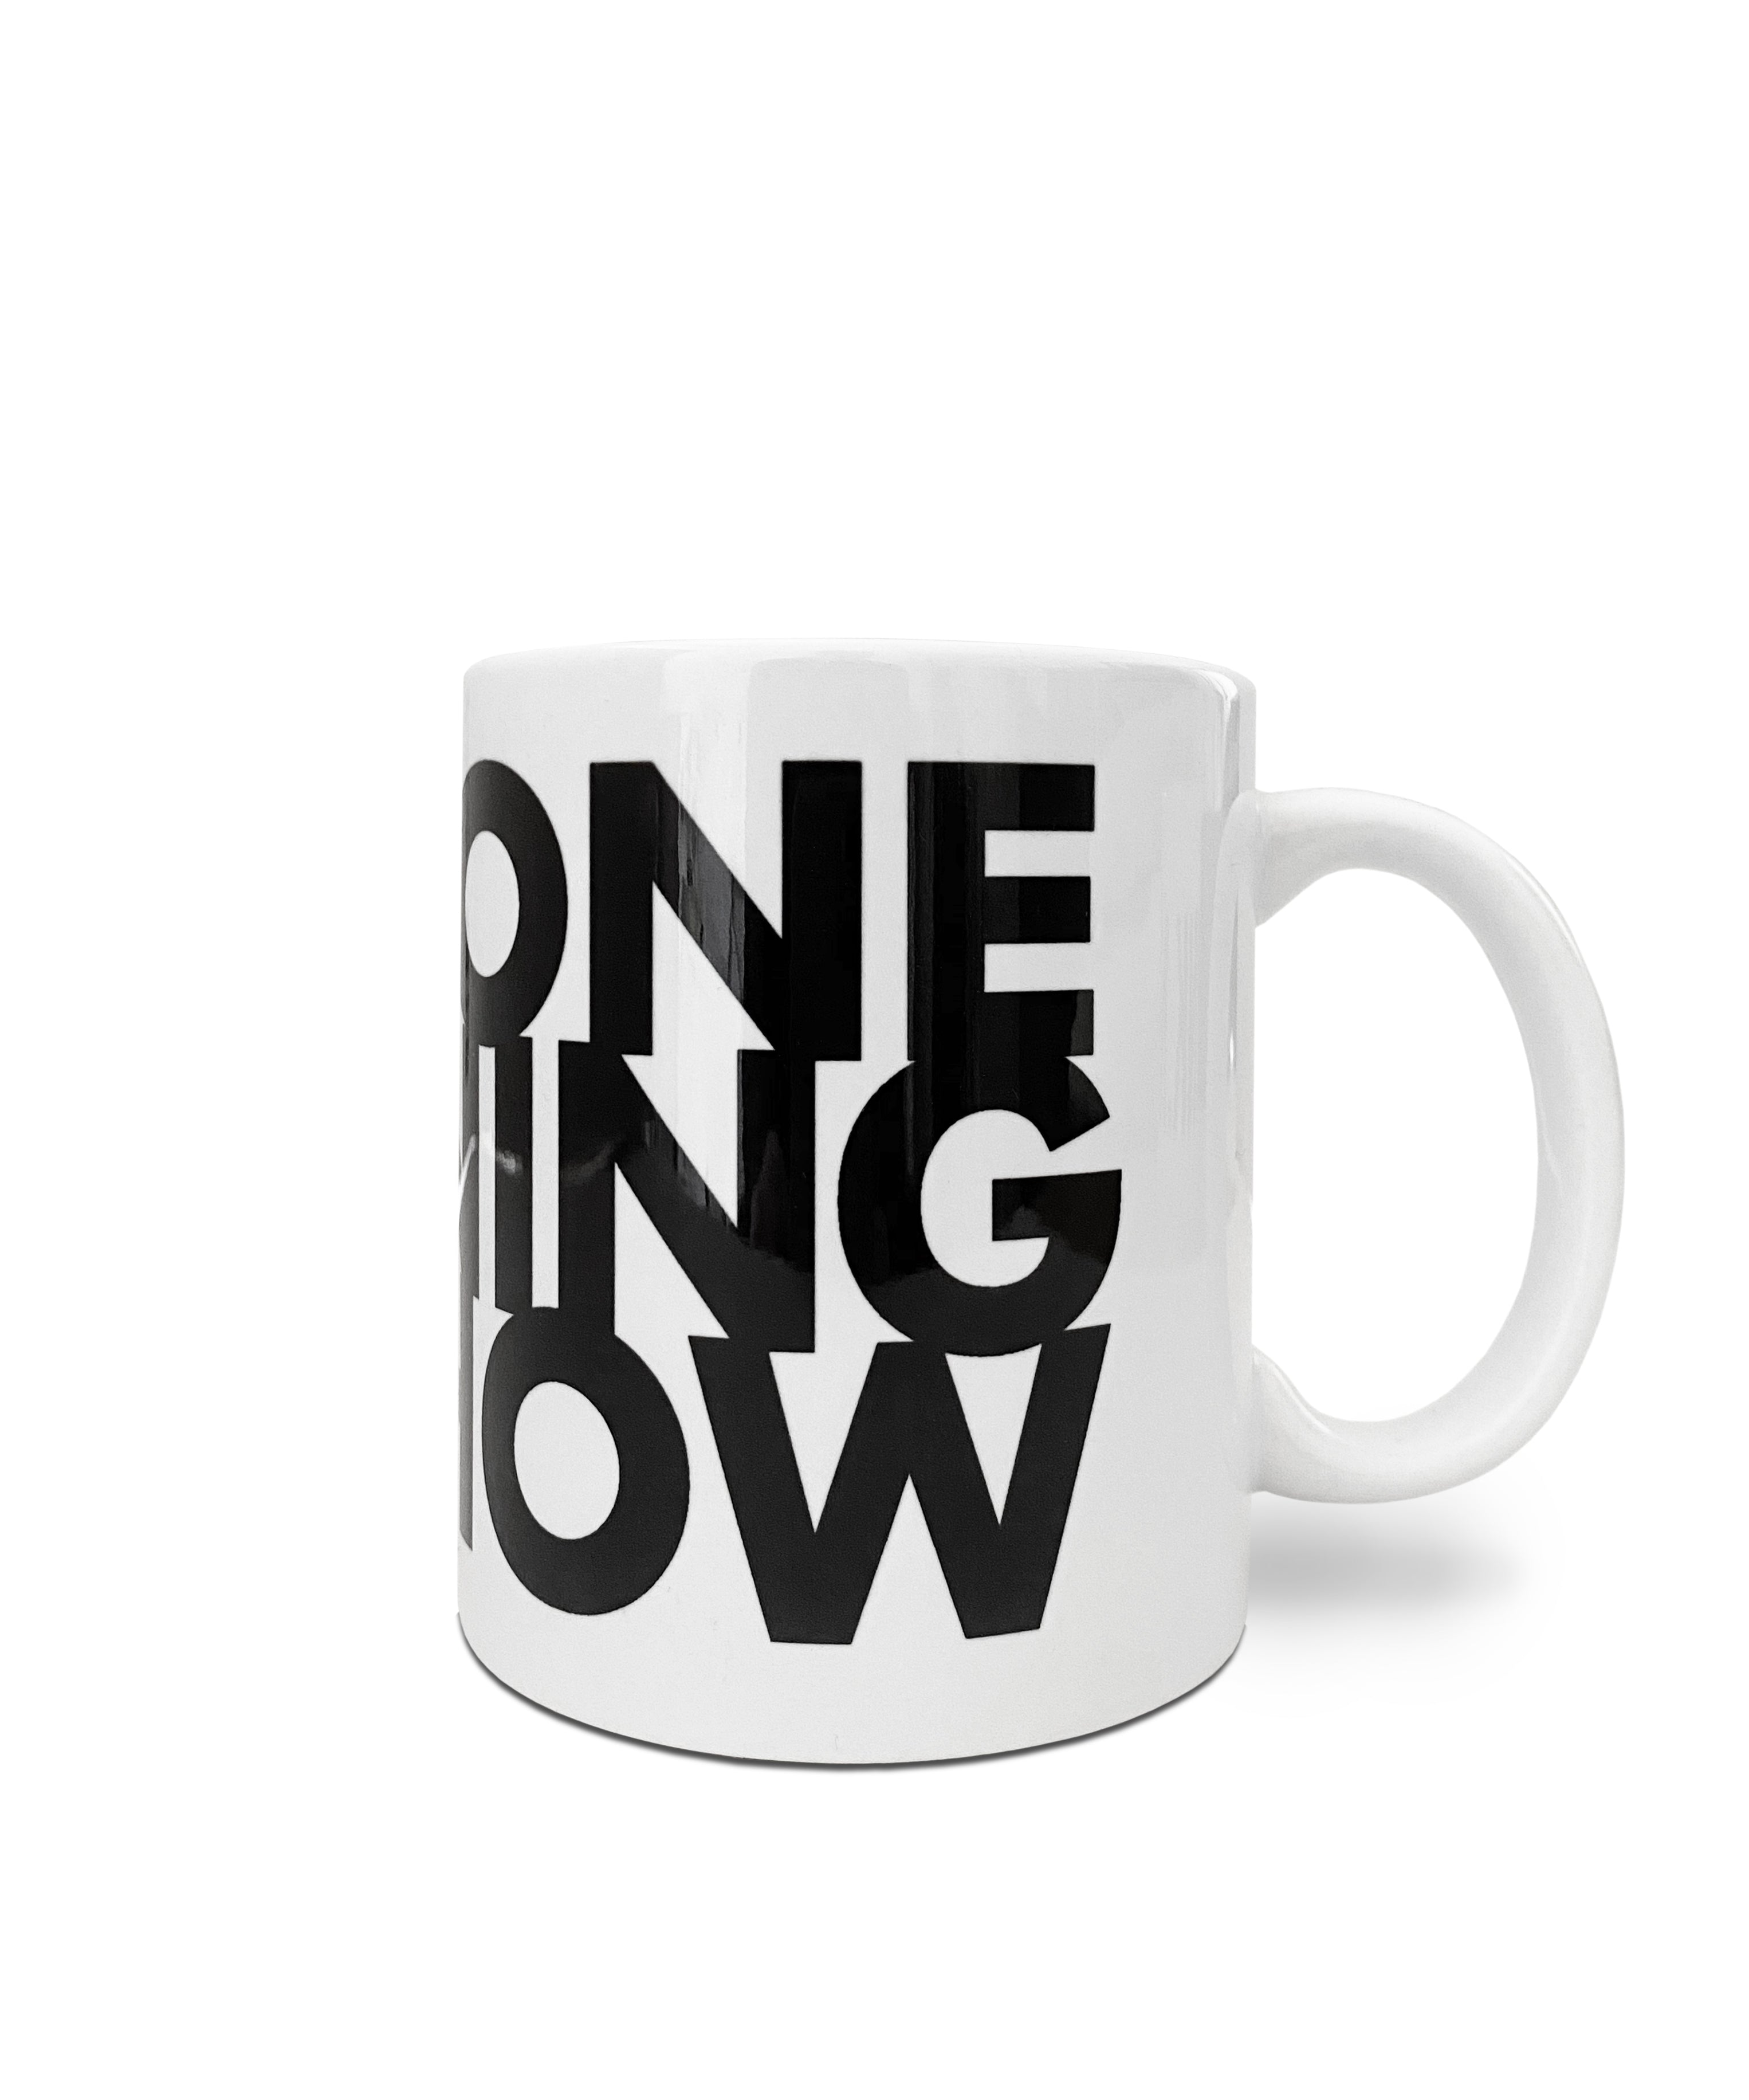 "Weiße Tasse mit Statement ""One Morning Show"" in schwarz"